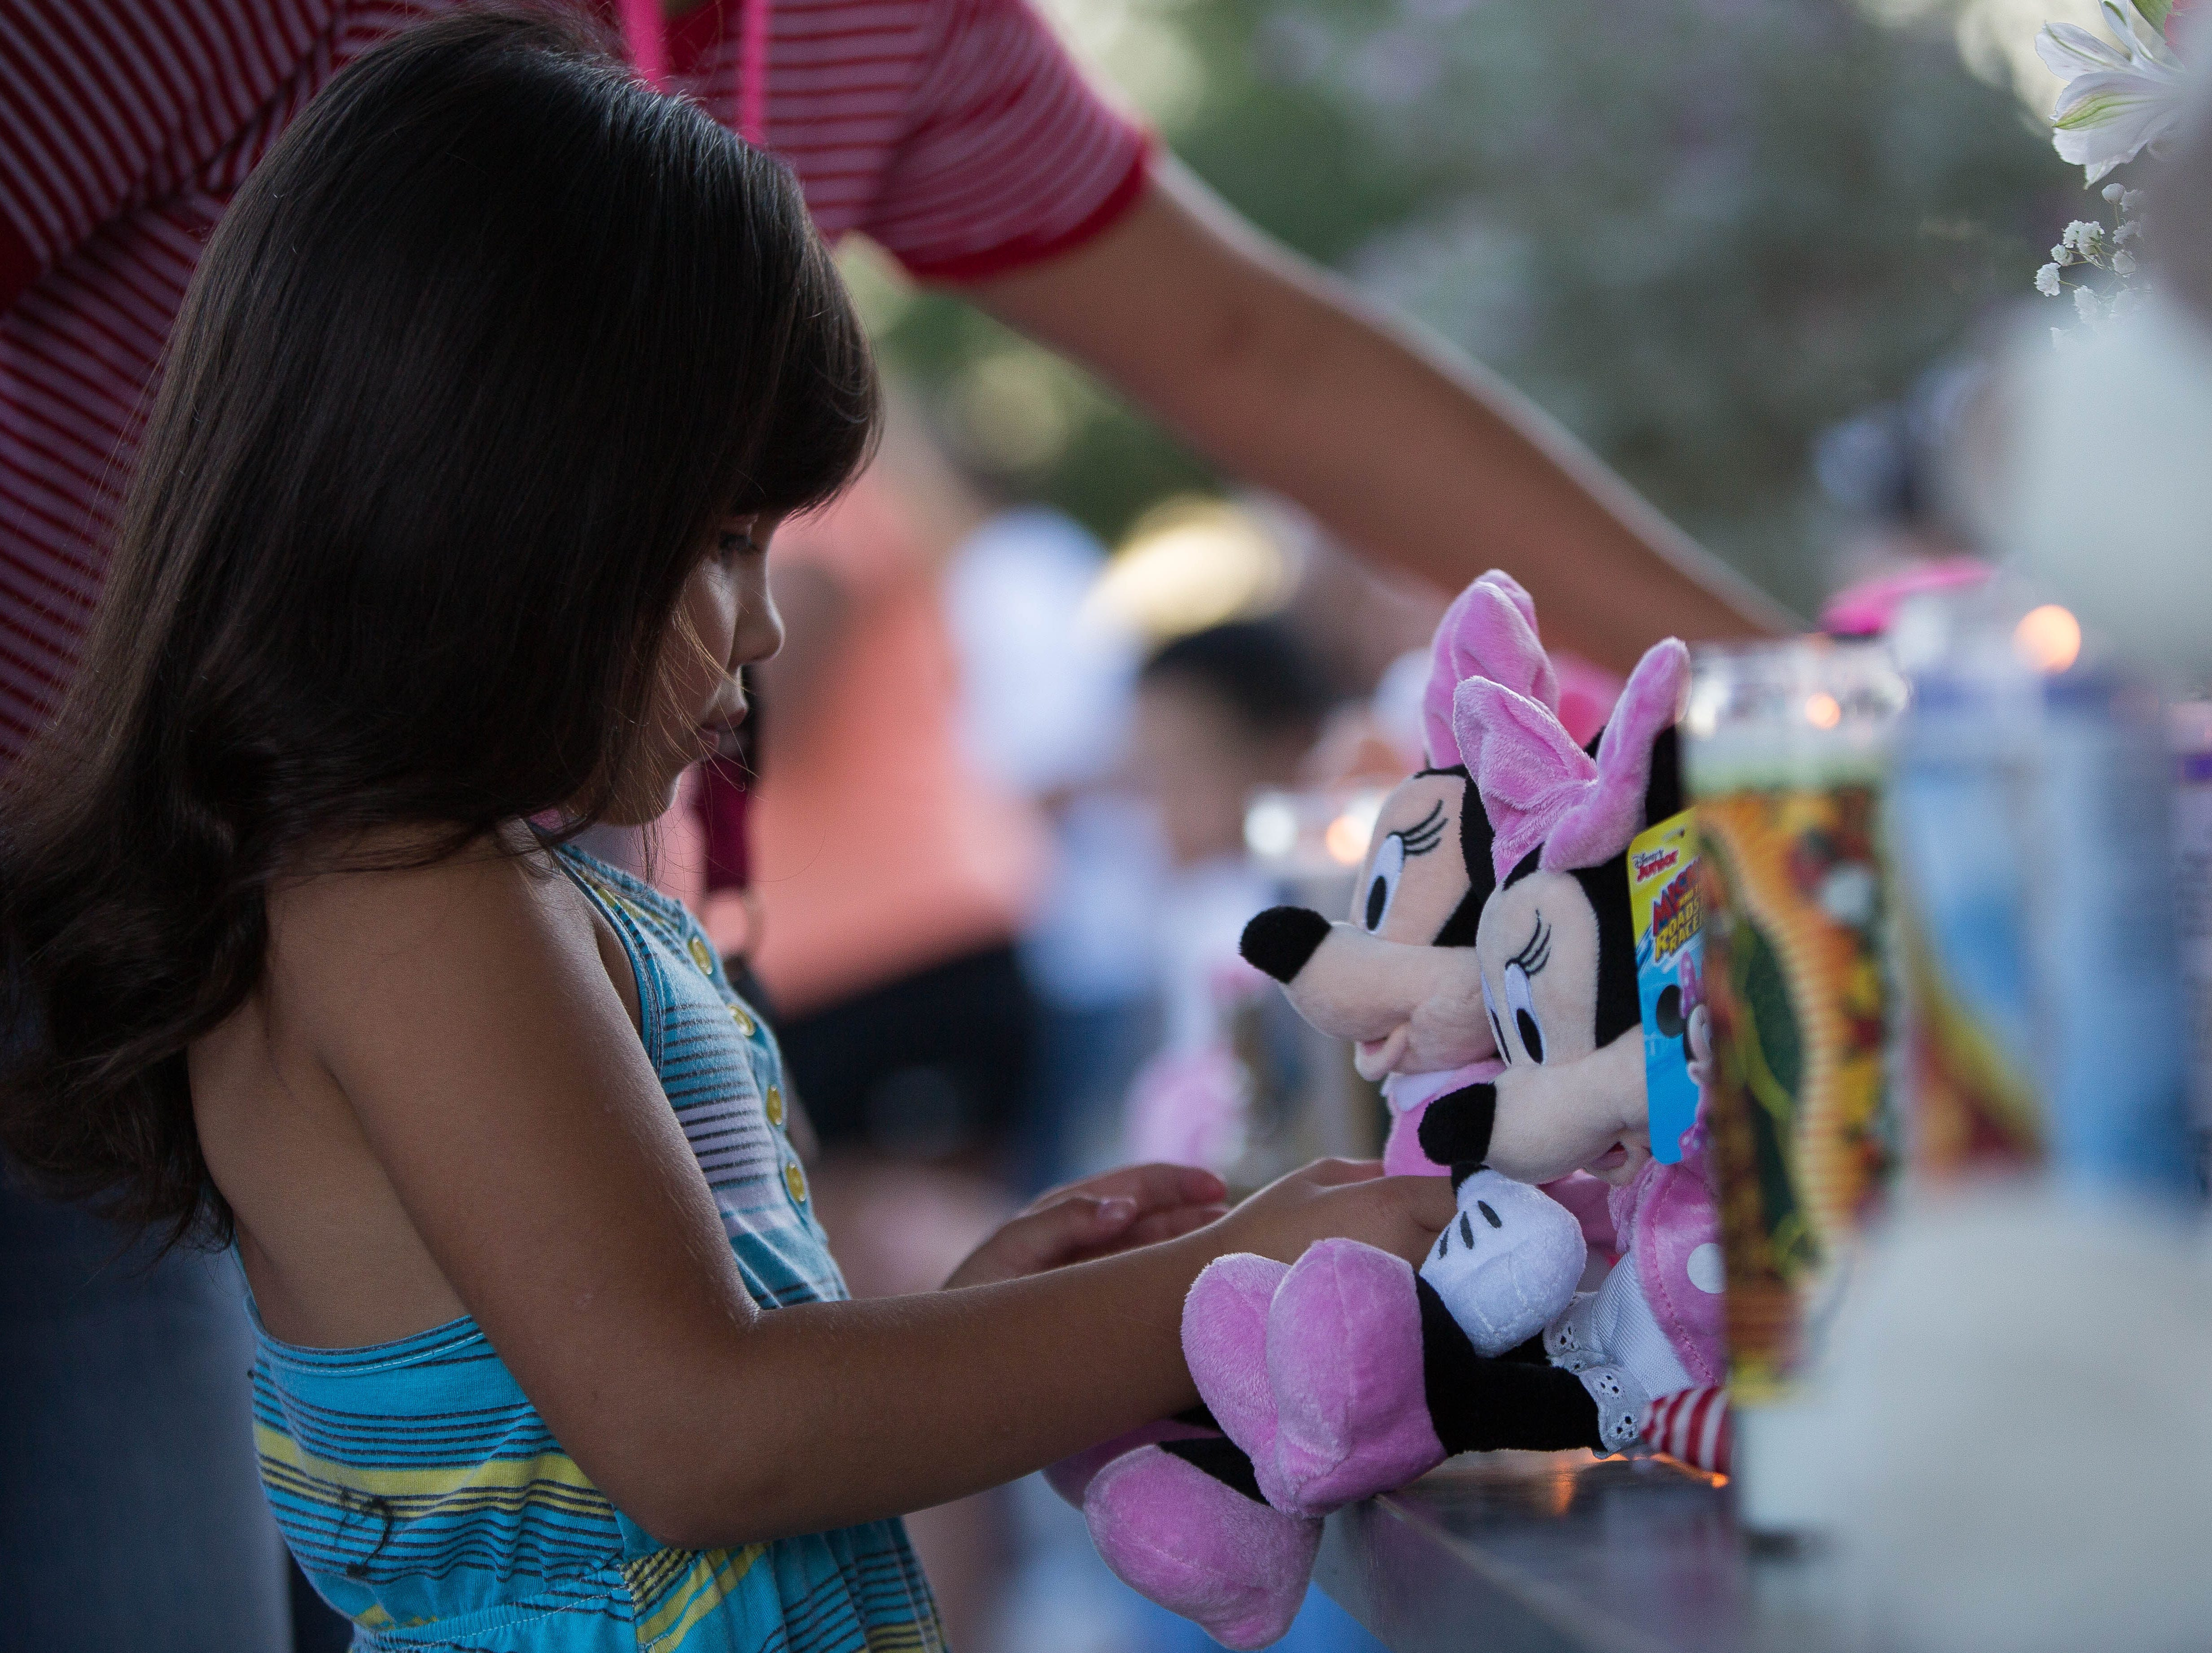 Jayley Meza, 5, lays a Minnie Mouse stuffed animal at the memorial for Fabiola Rodriguez, 2, Friday September 7, 2018 during a candlelight vigil for the two year old.